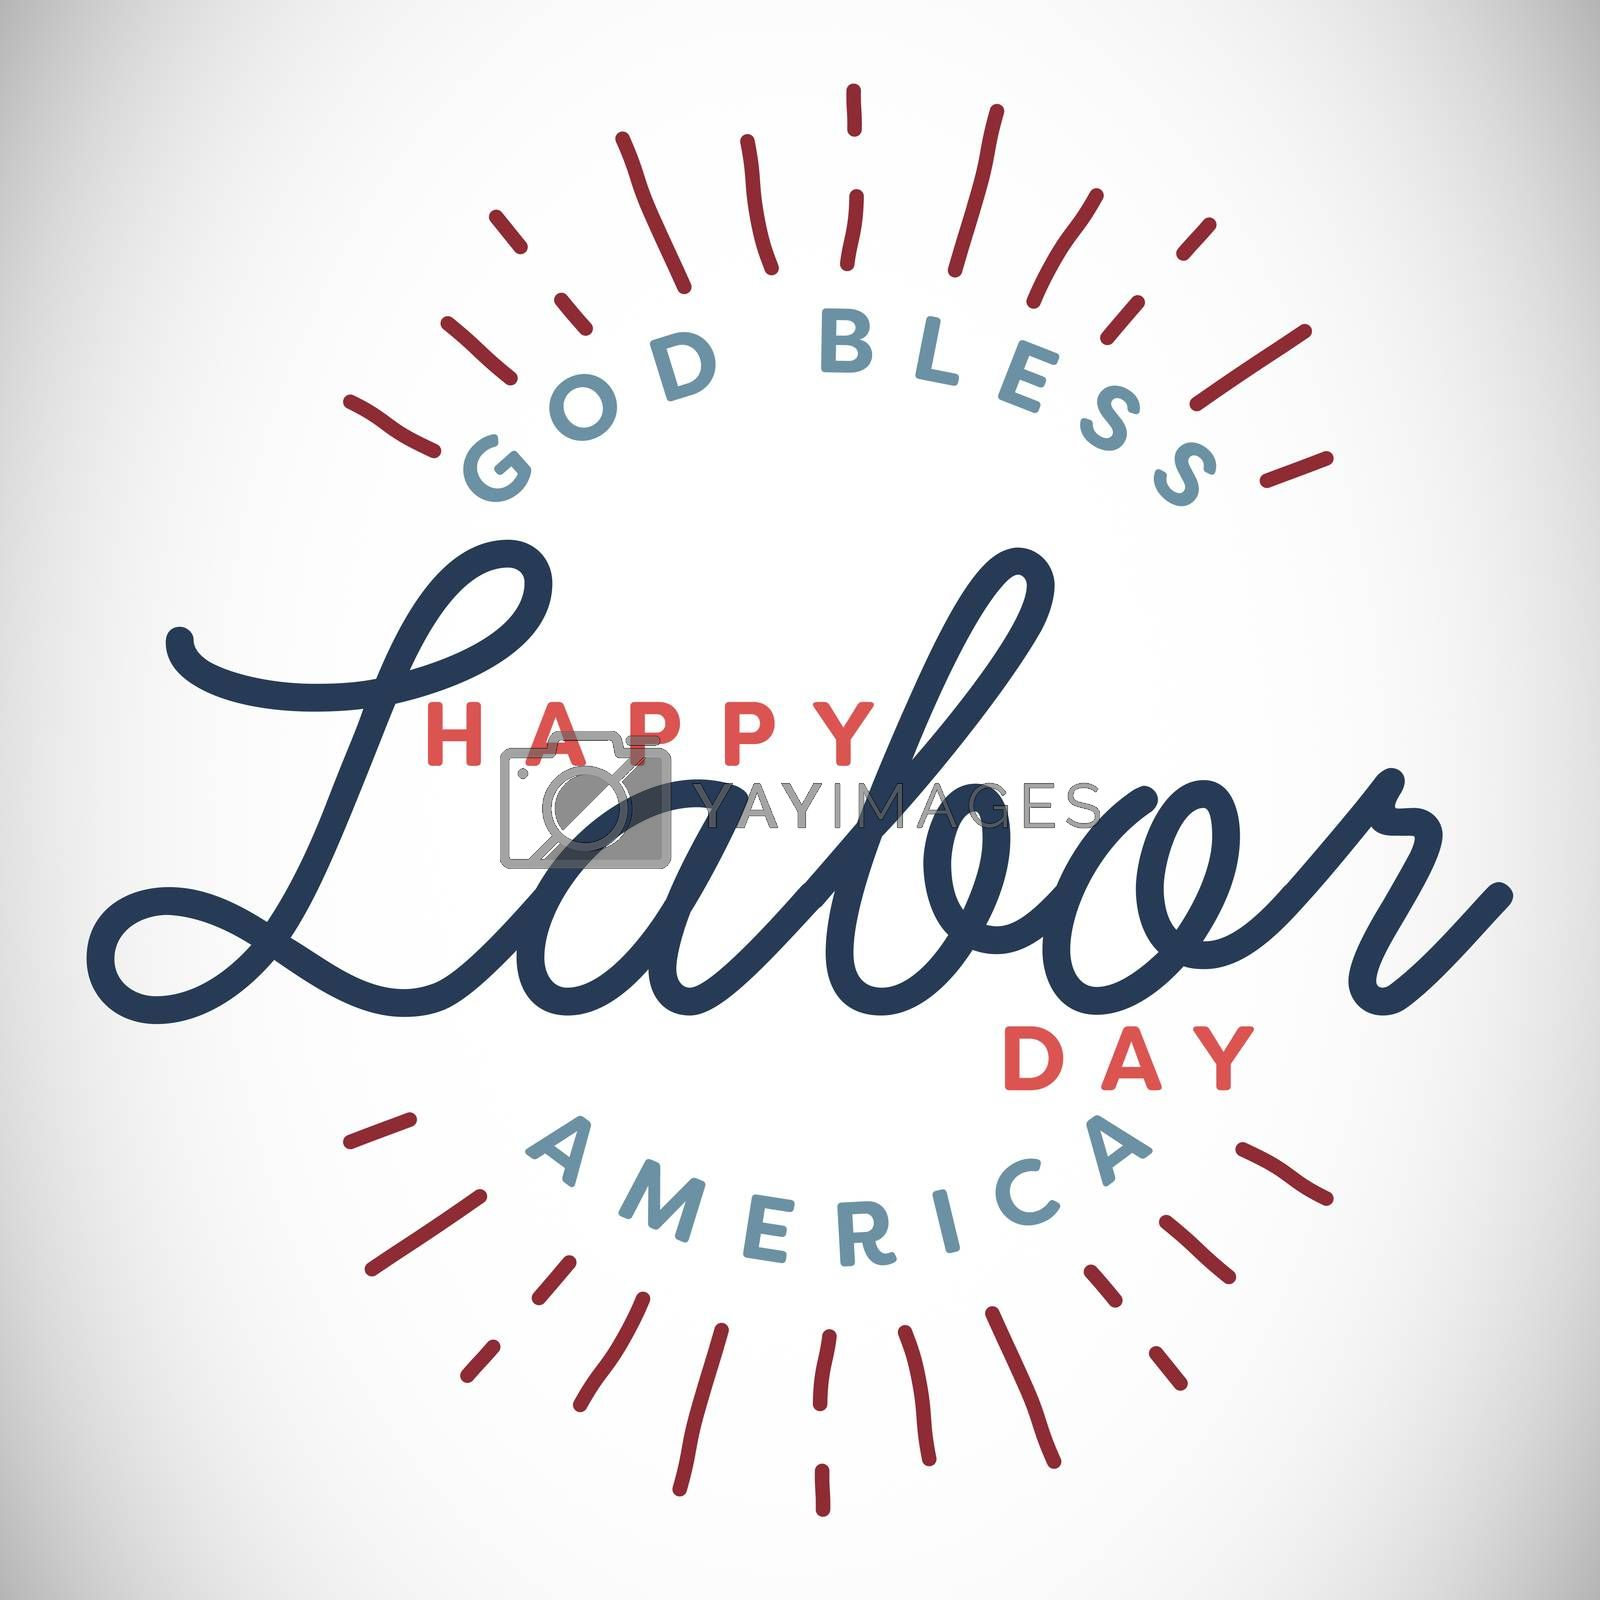 Composite image of happy labor day and god bless America text by Wavebreakmedia